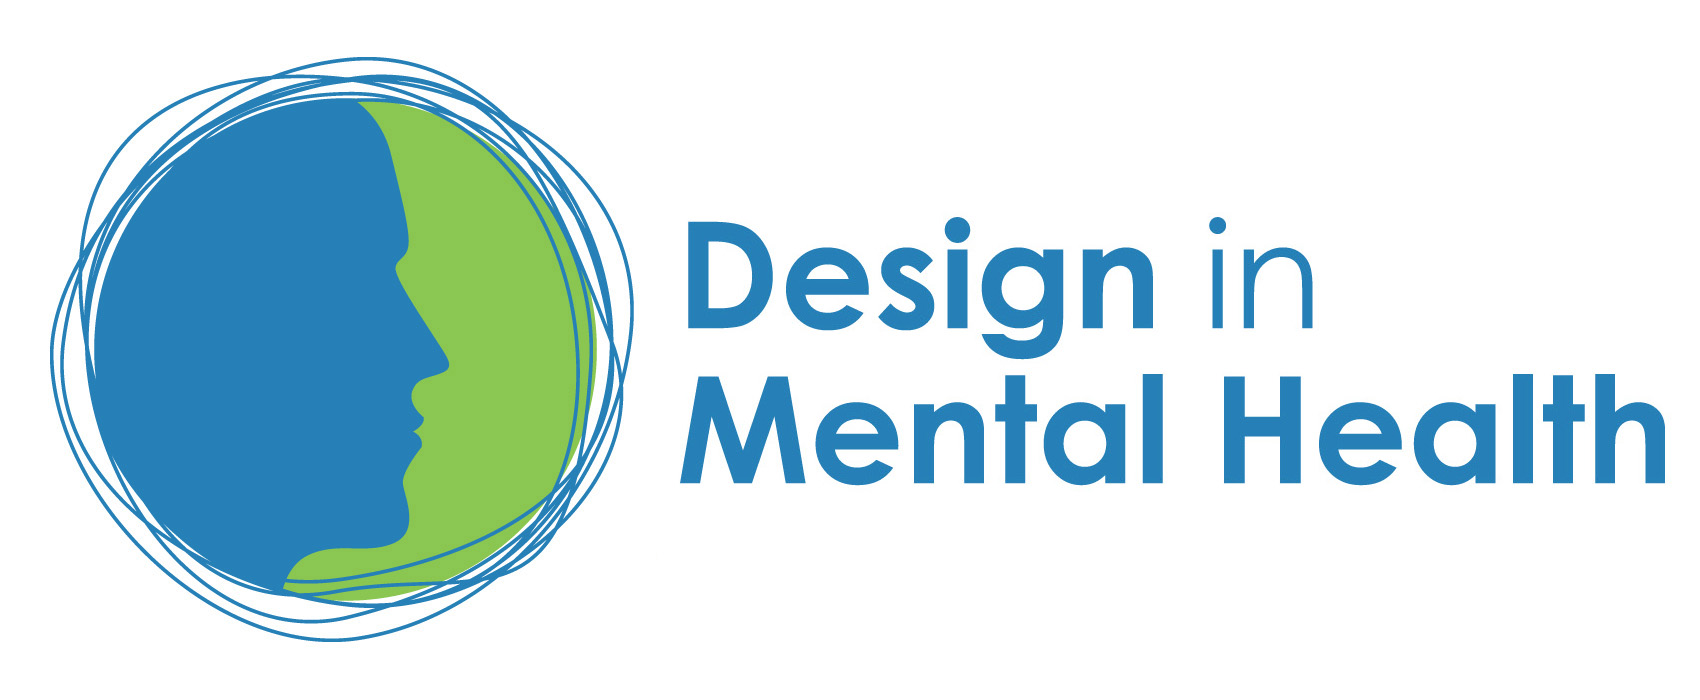 Dudley Resan Design Mental Health Membership